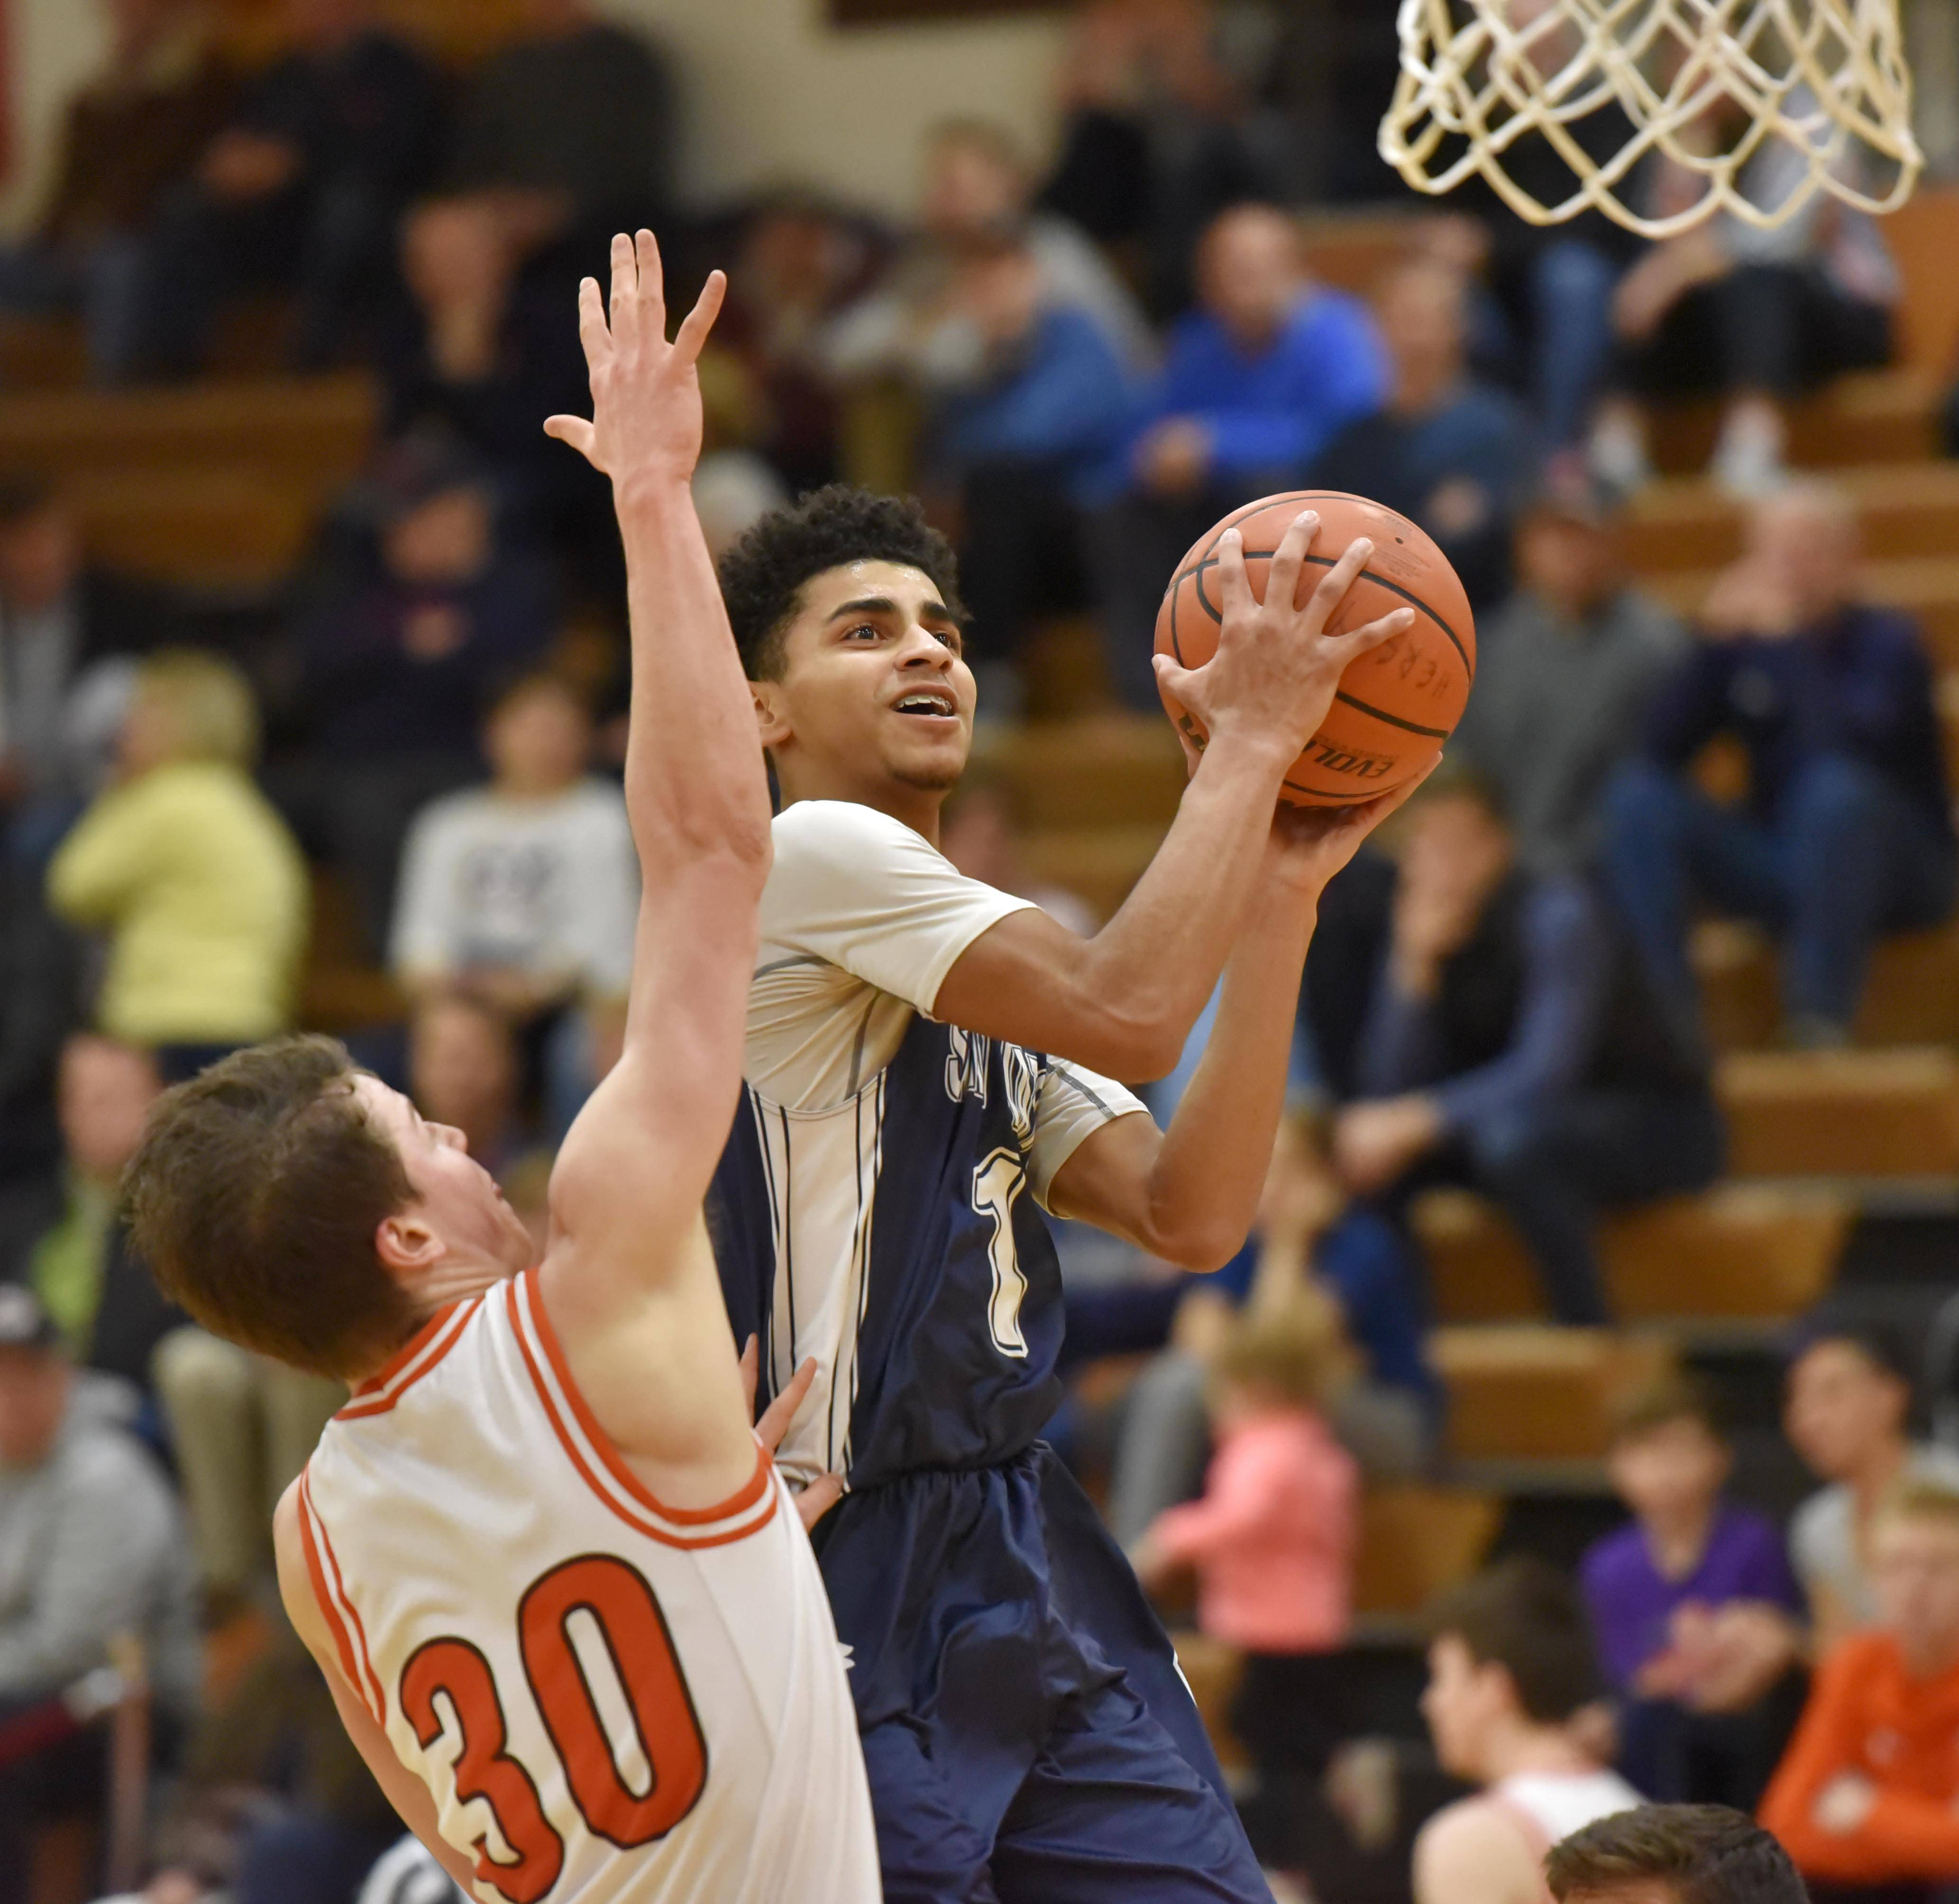 St. Viator's Treyvon Calvin glides past Hersey's Jason Schmidt Saturday in a boys basketball game in Arlington Heights.